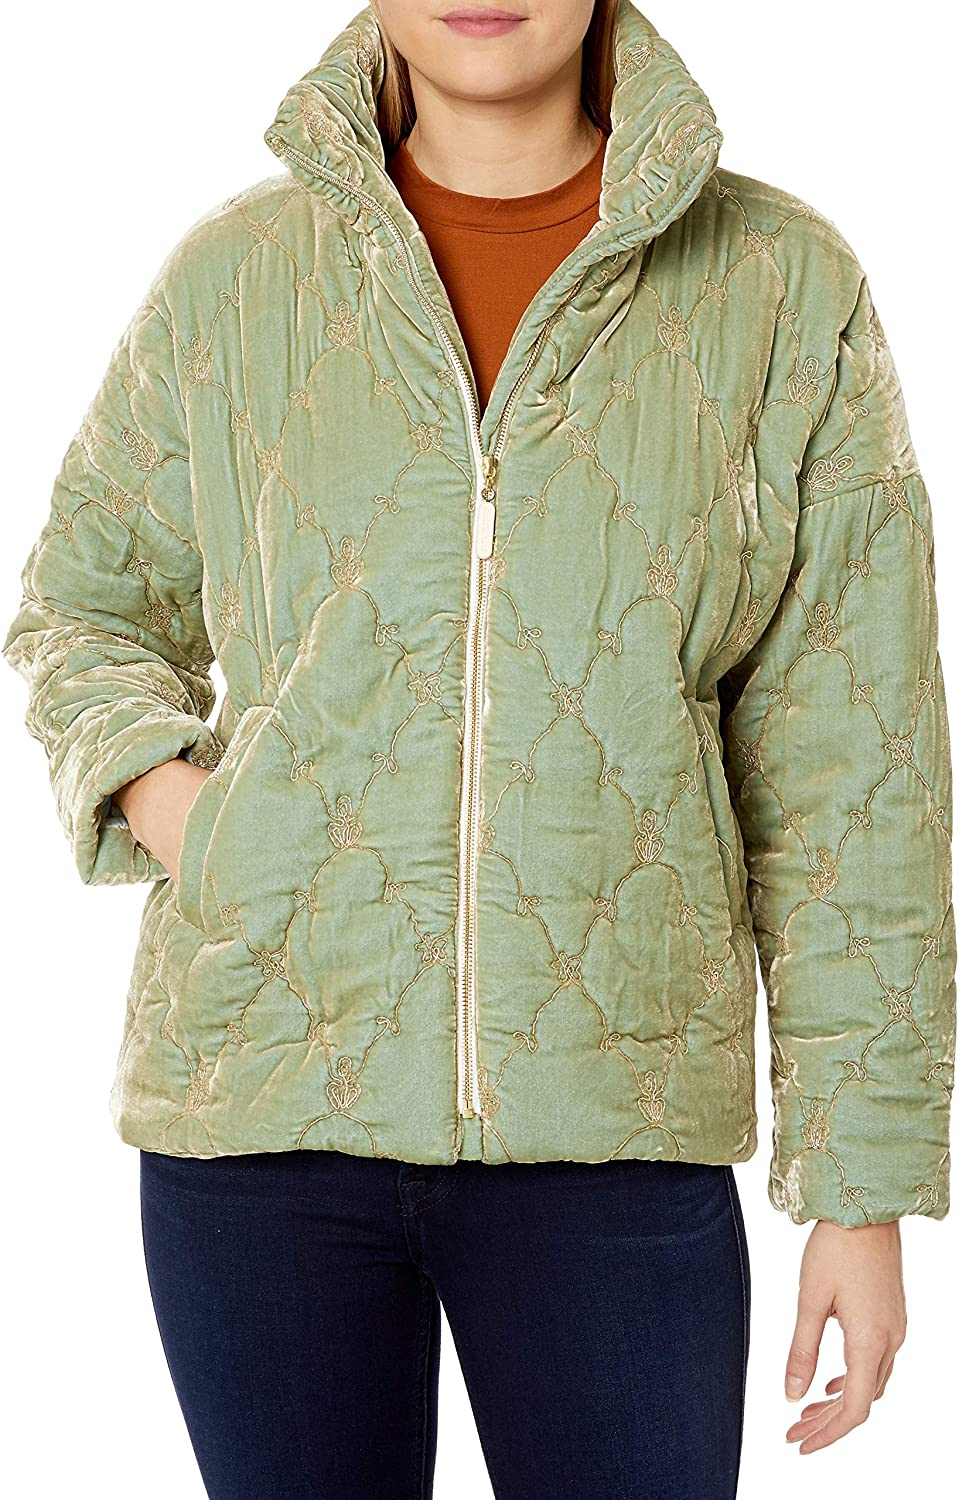 Johnny Was Women's Silk Blend Blue At the price Super beauty product restock quality top! Jacket Velvet Puffer